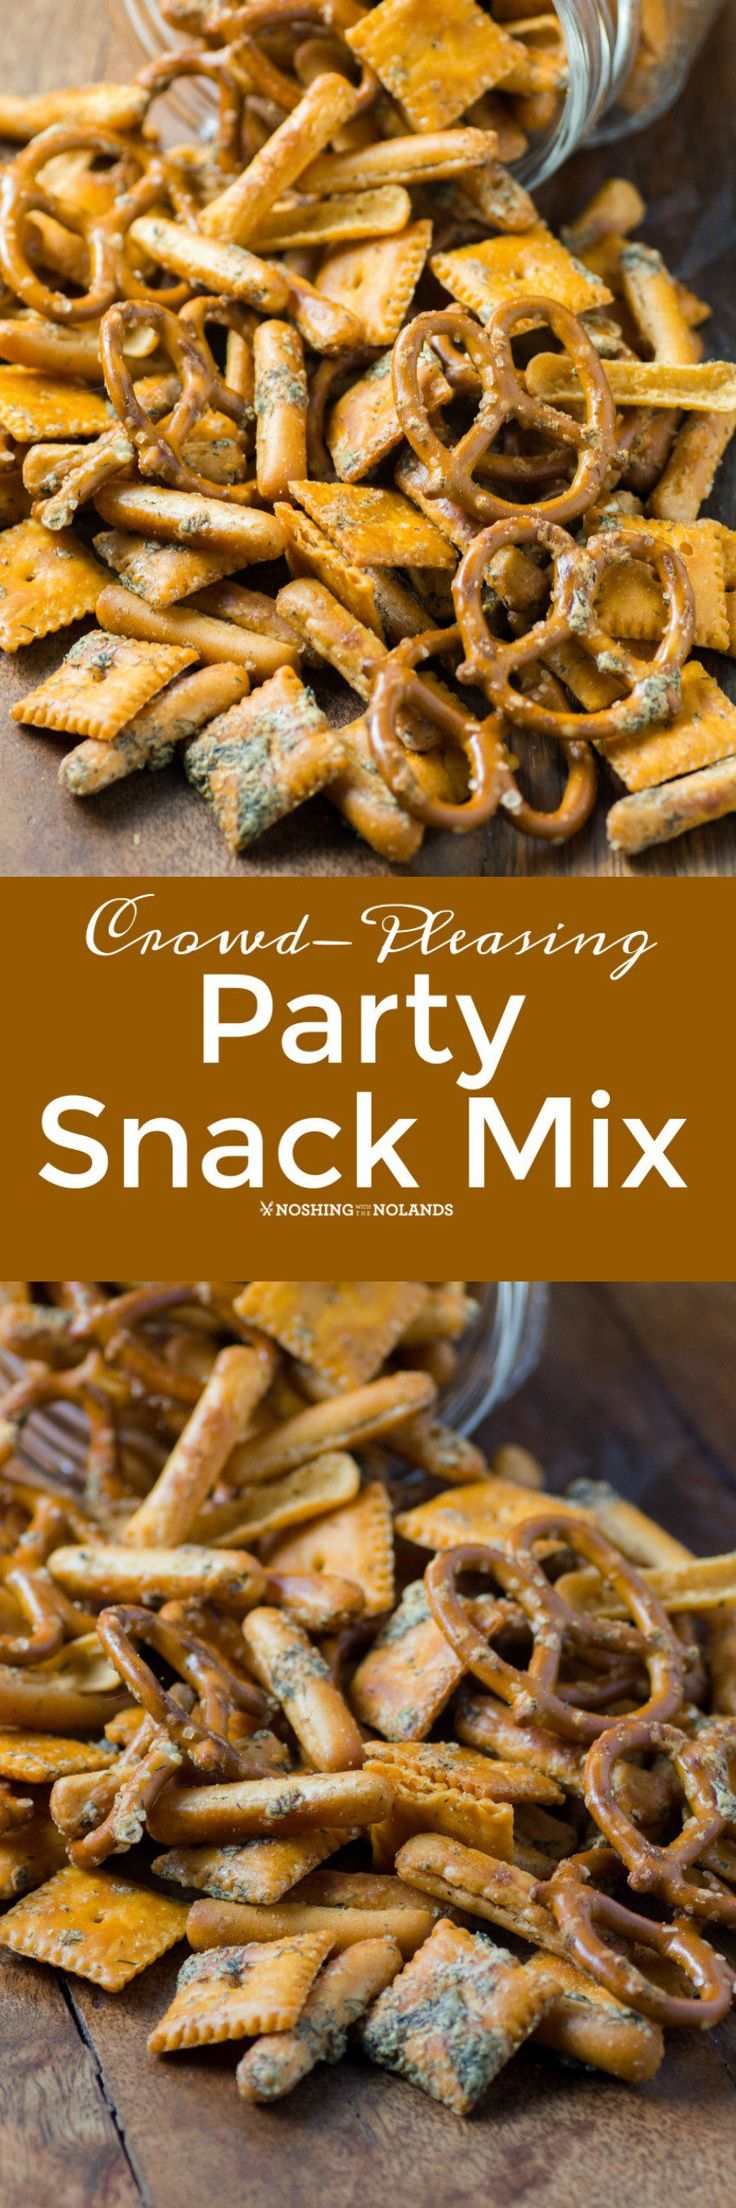 Crowd-Pleasing Party Snack Mix Do you get stumped into what munchies to put out for a crowd? Maybe it is game day or a holiday party. You want something more than chips and nuts but what? This Crowd-Pleasing Party Snack Mix recipe will come in very handy. It is easy to make and even freezes... Read More »